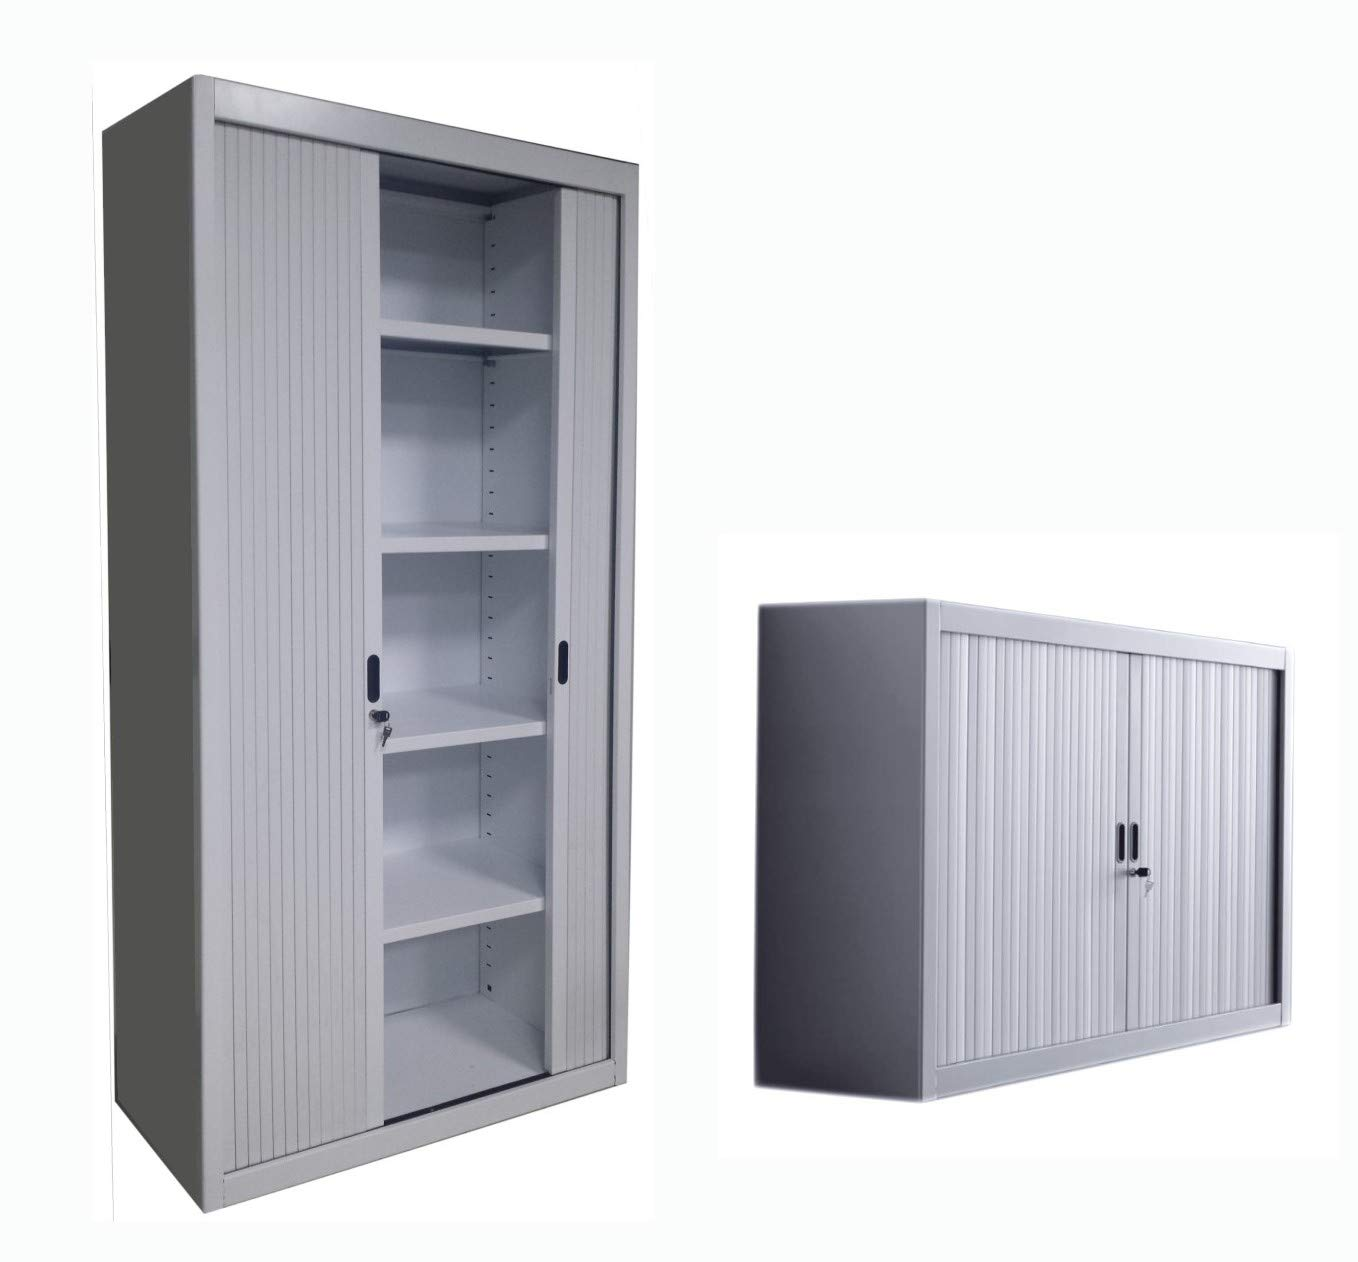 Pleasing Set Of 2 Pcs Office Storage Roller Sliding Door Metal Best Image Libraries Weasiibadanjobscom